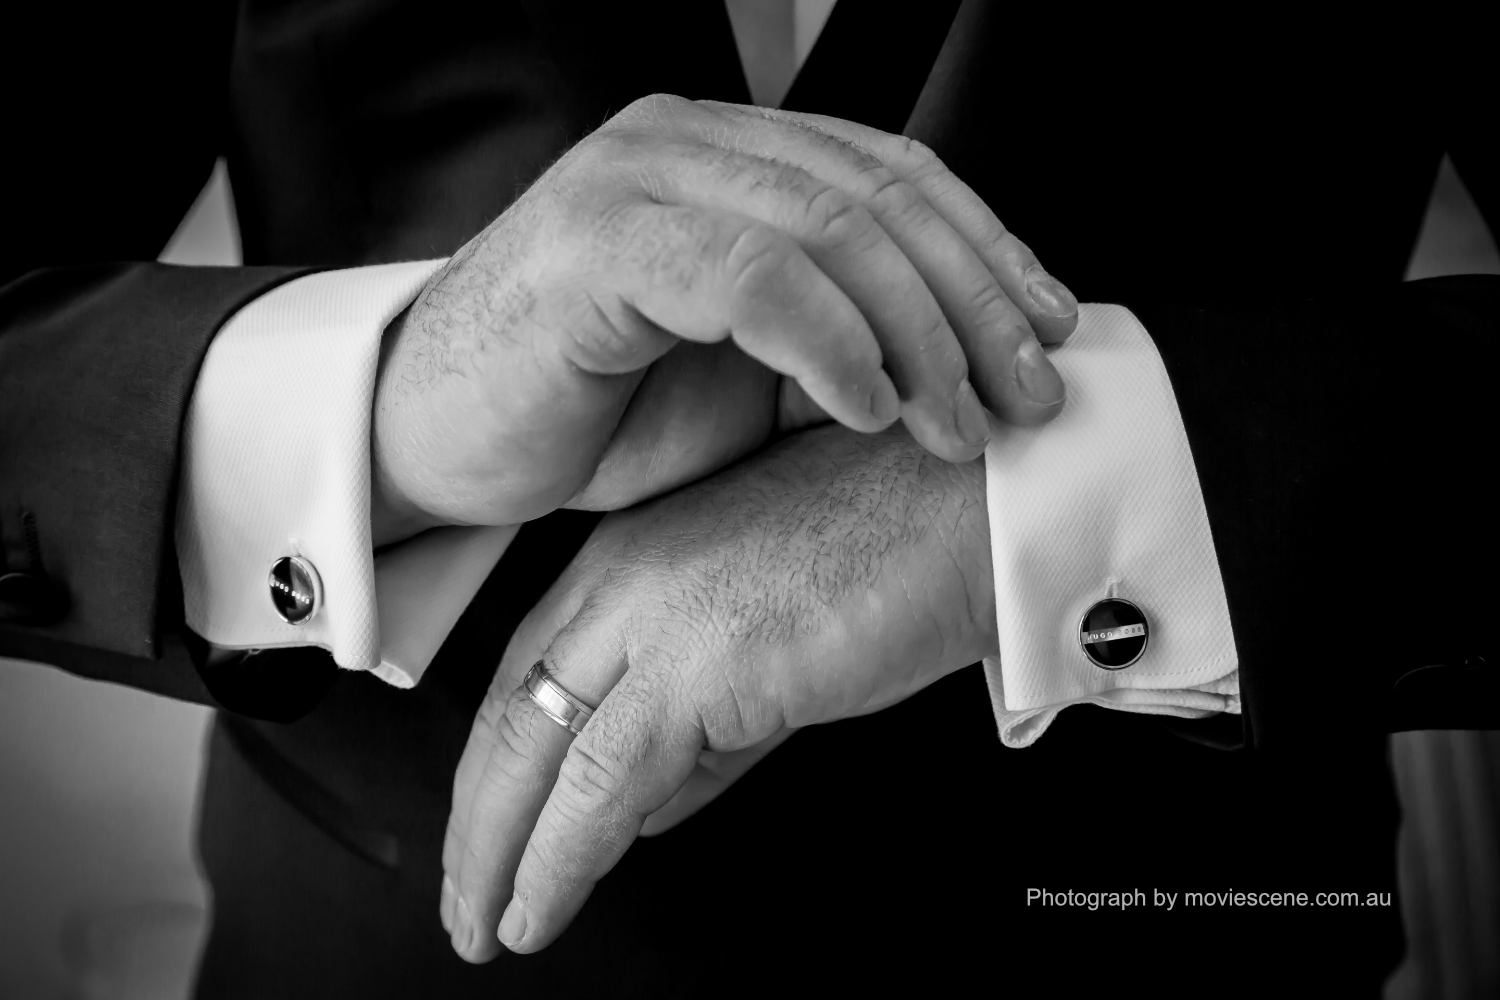 Movie Scene Wedding Photo of Grooms Cufflinks Melbourne Wedding Videography and Photography